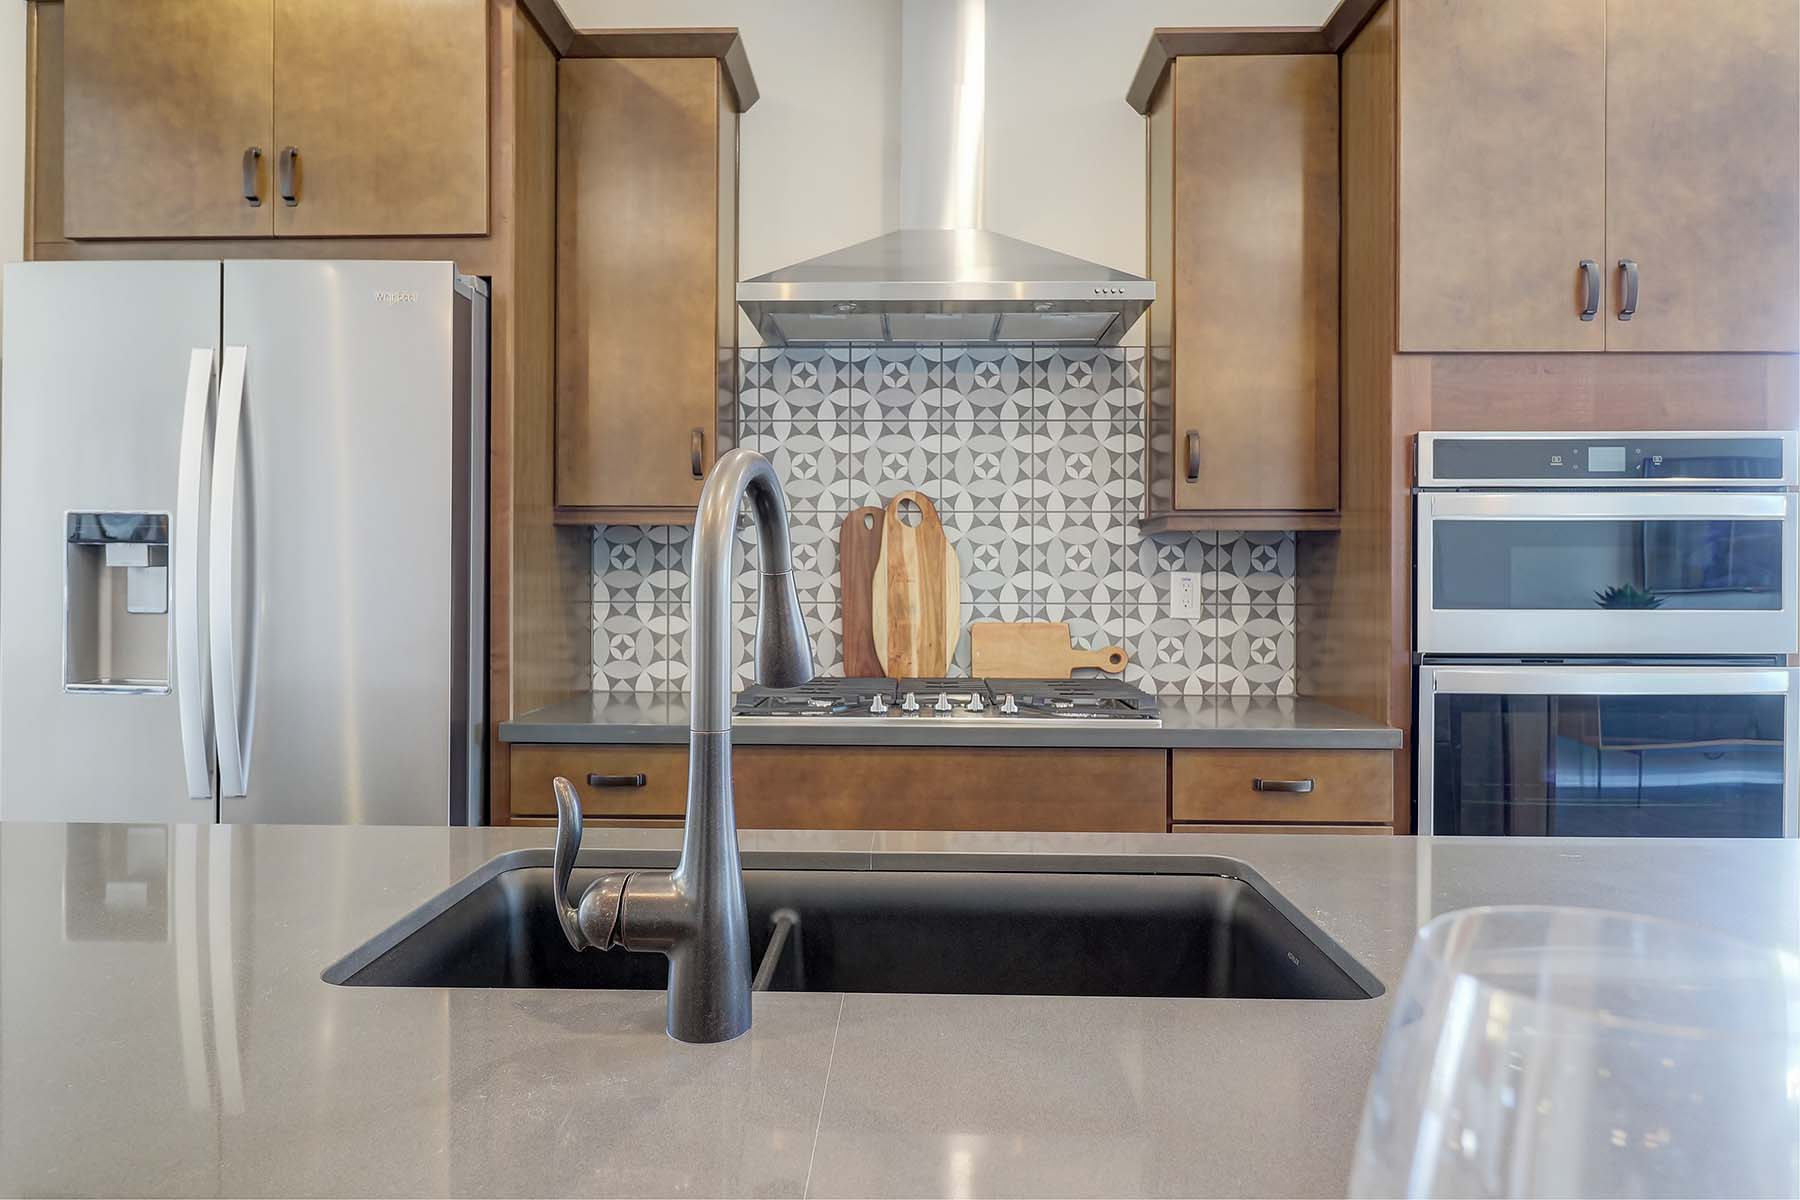 Elwood Plan Kitchen at Crestwood at Canyon Trails in Goodyear Arizona by Mattamy Homes